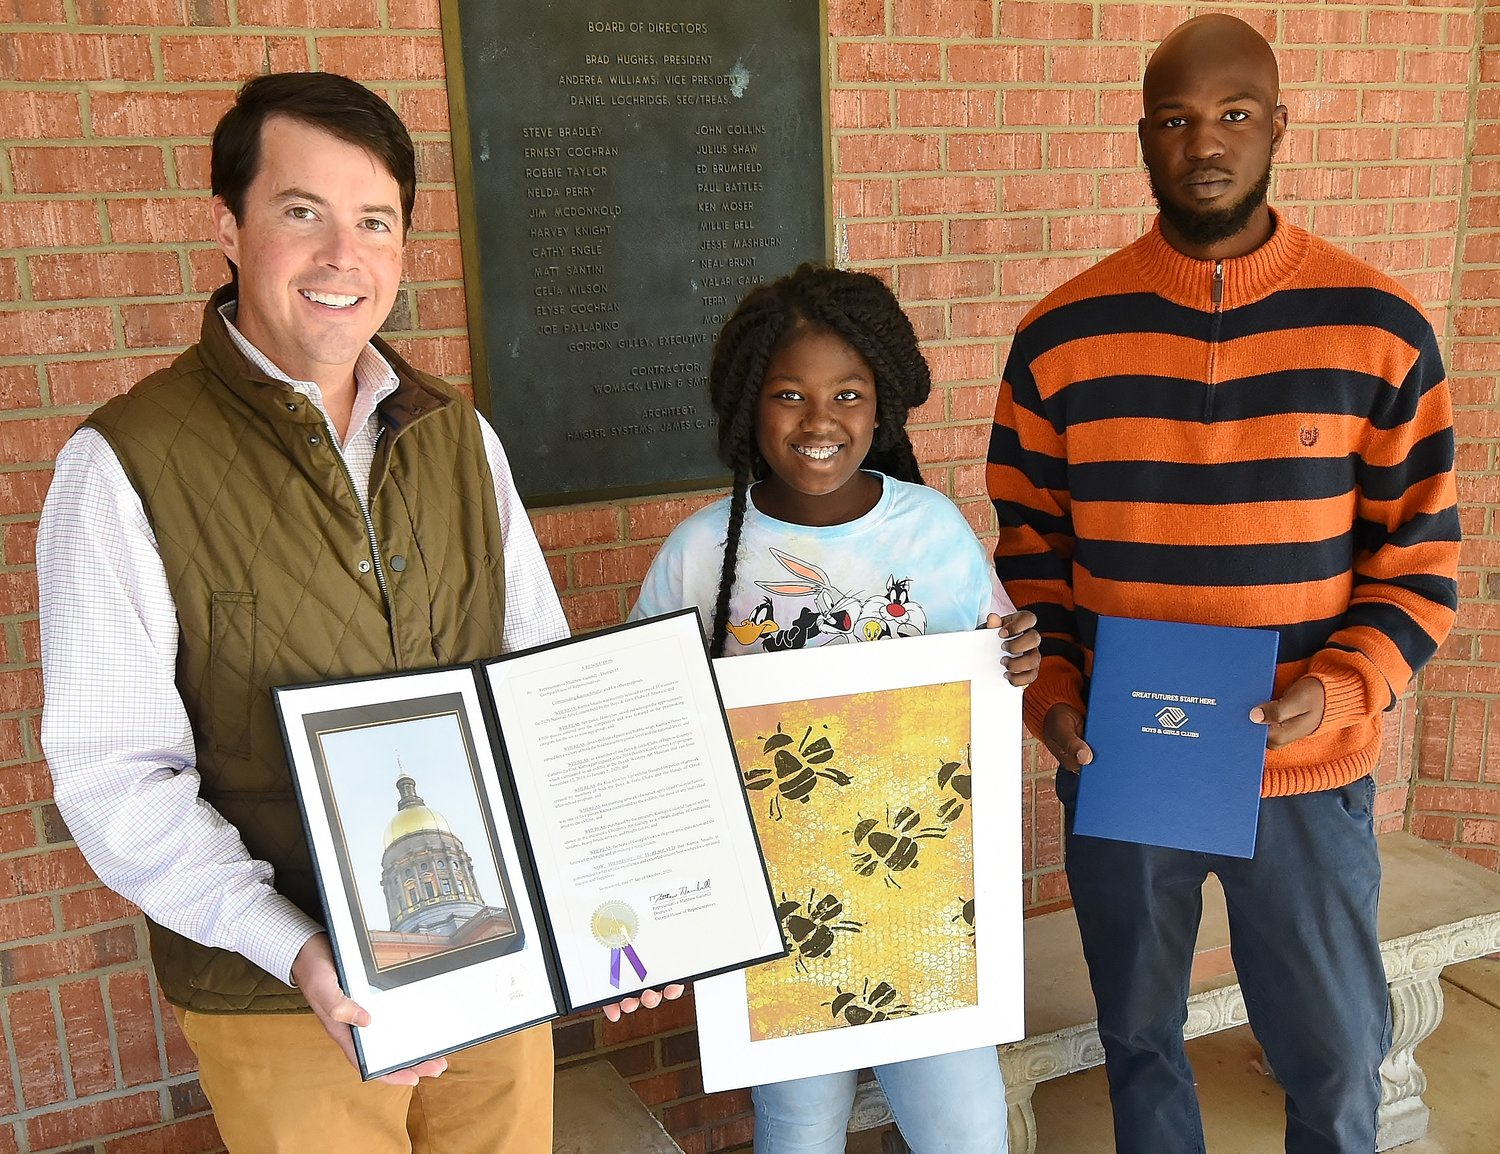 At the Cartersville Unit of the Boys & Girls Club Nov. 18, state Rep. Matthew Gambill, left, presented a resolution to Kamia Smalls, center, recognizing her artwork. Kamia's father, Brandon, also was present for the presentation.